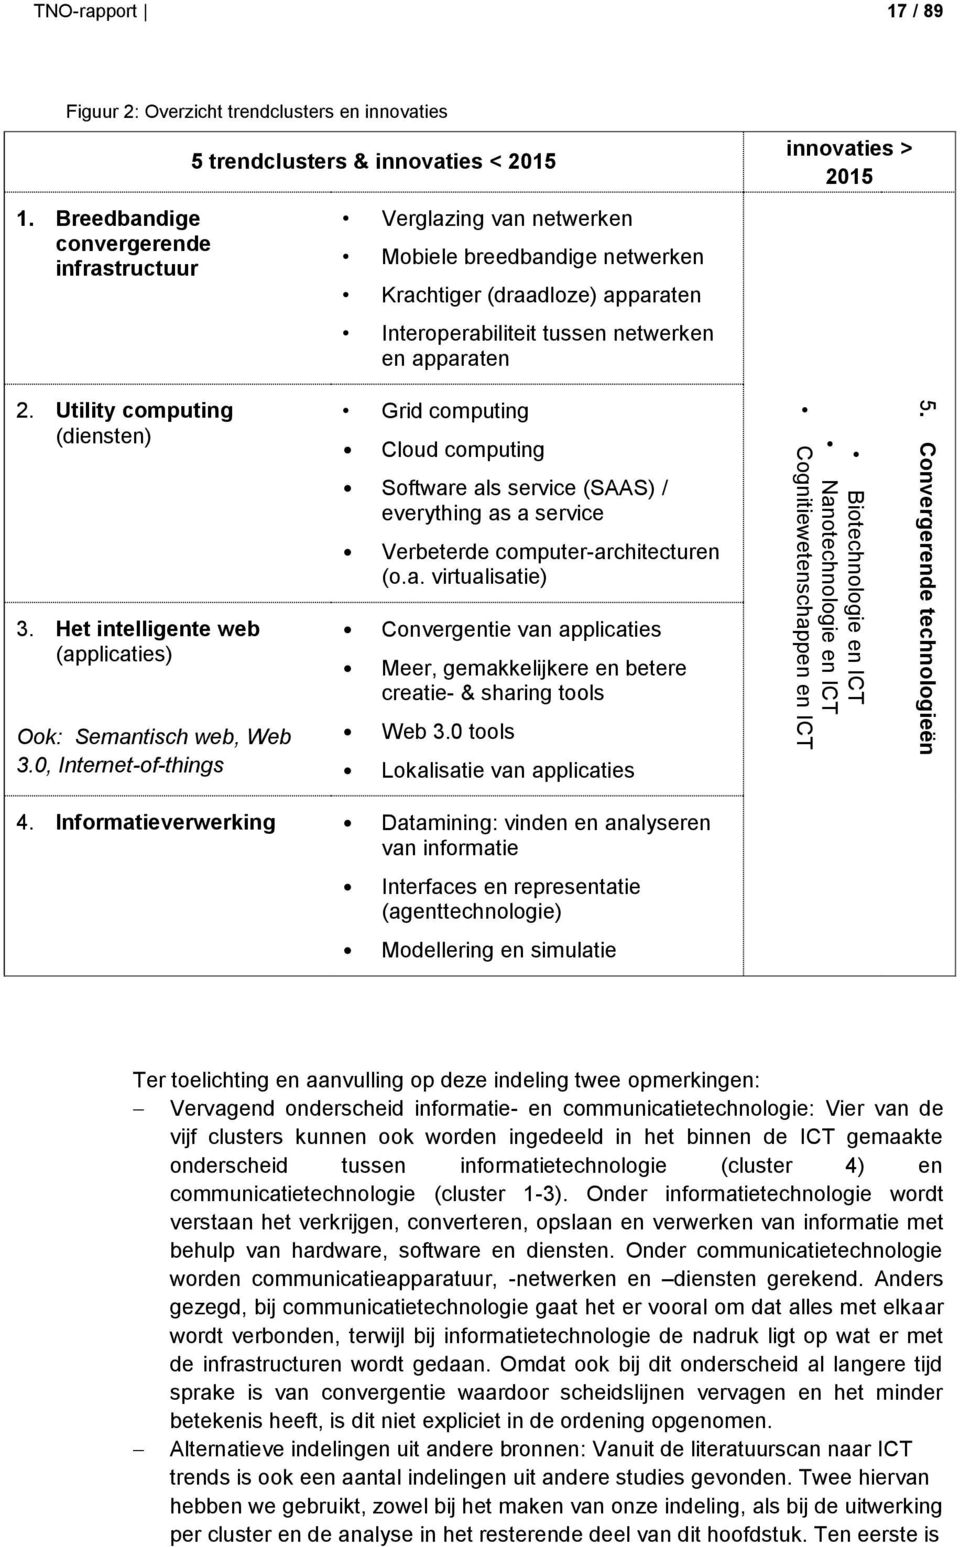 netwerken en apparaten innovaties > 2015 2. Utility computing (diensten) Grid computing Cloud computing Software als service (SAAS) / everything as a service Verbeterde computer-architecturen (o.a. virtualisatie) 3.